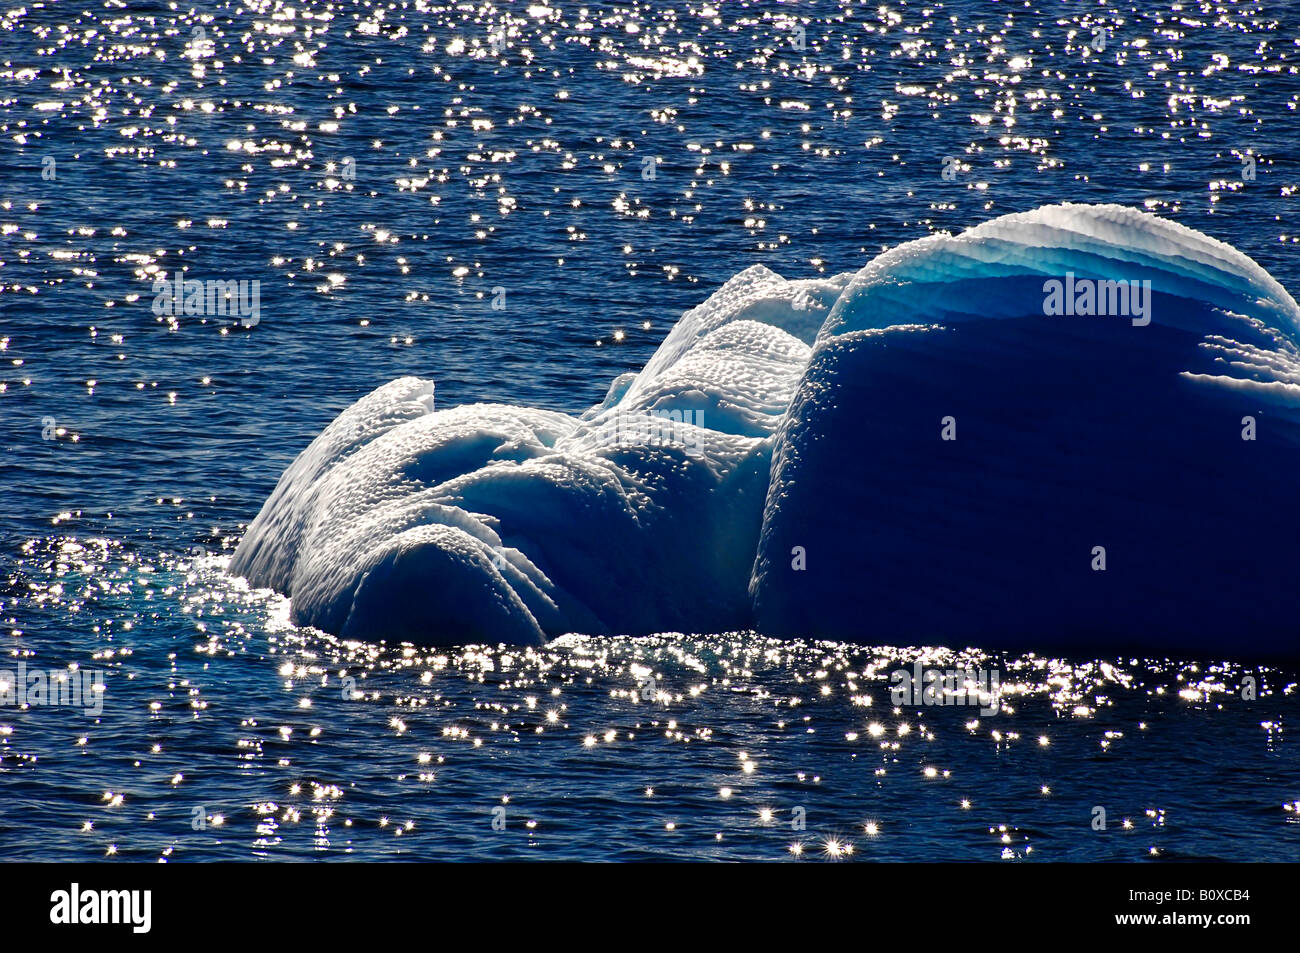 drifting ice on glimmering water surface, Antarctica - Stock Image